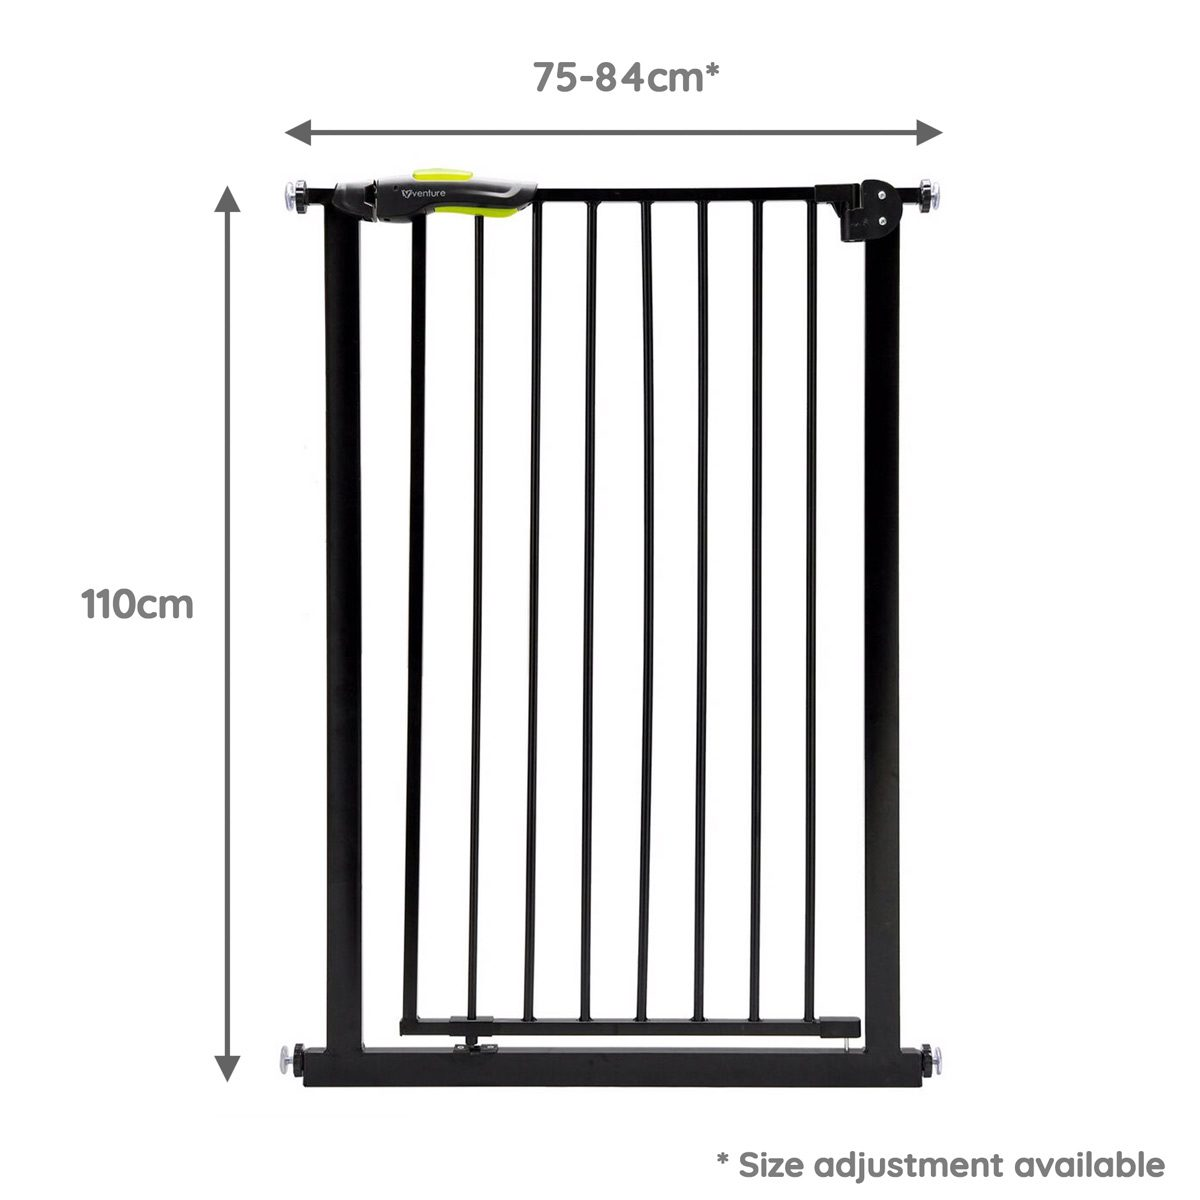 Venture Safety Gate Dimensions